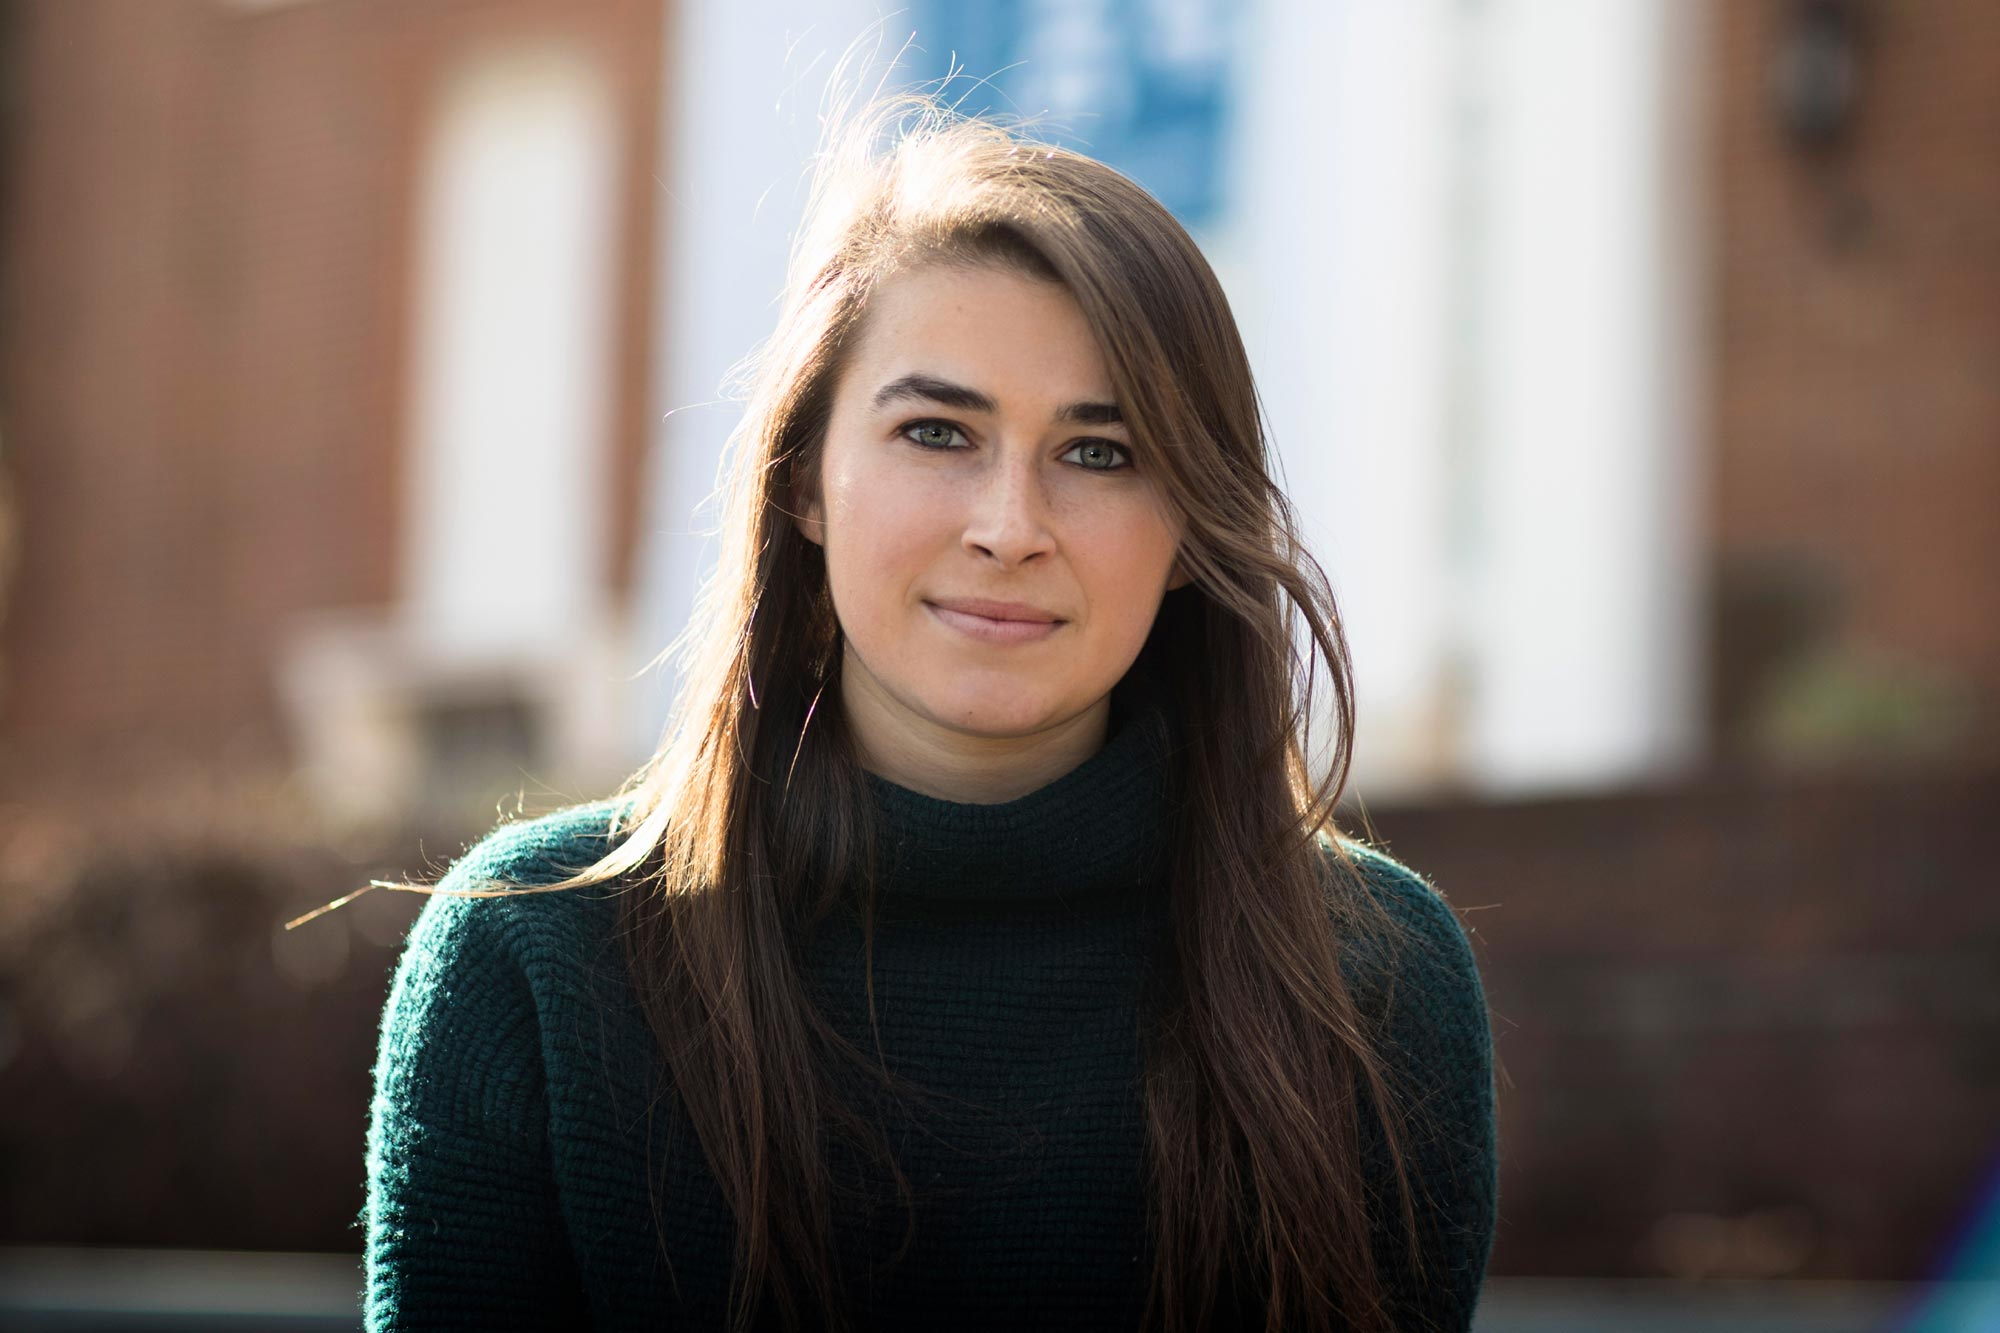 Emily Cox will study at the University of Oxford as UVA's first participant in the Mica and Ahmet Ertegun Graduate Scholarship Programme in the Humanities.